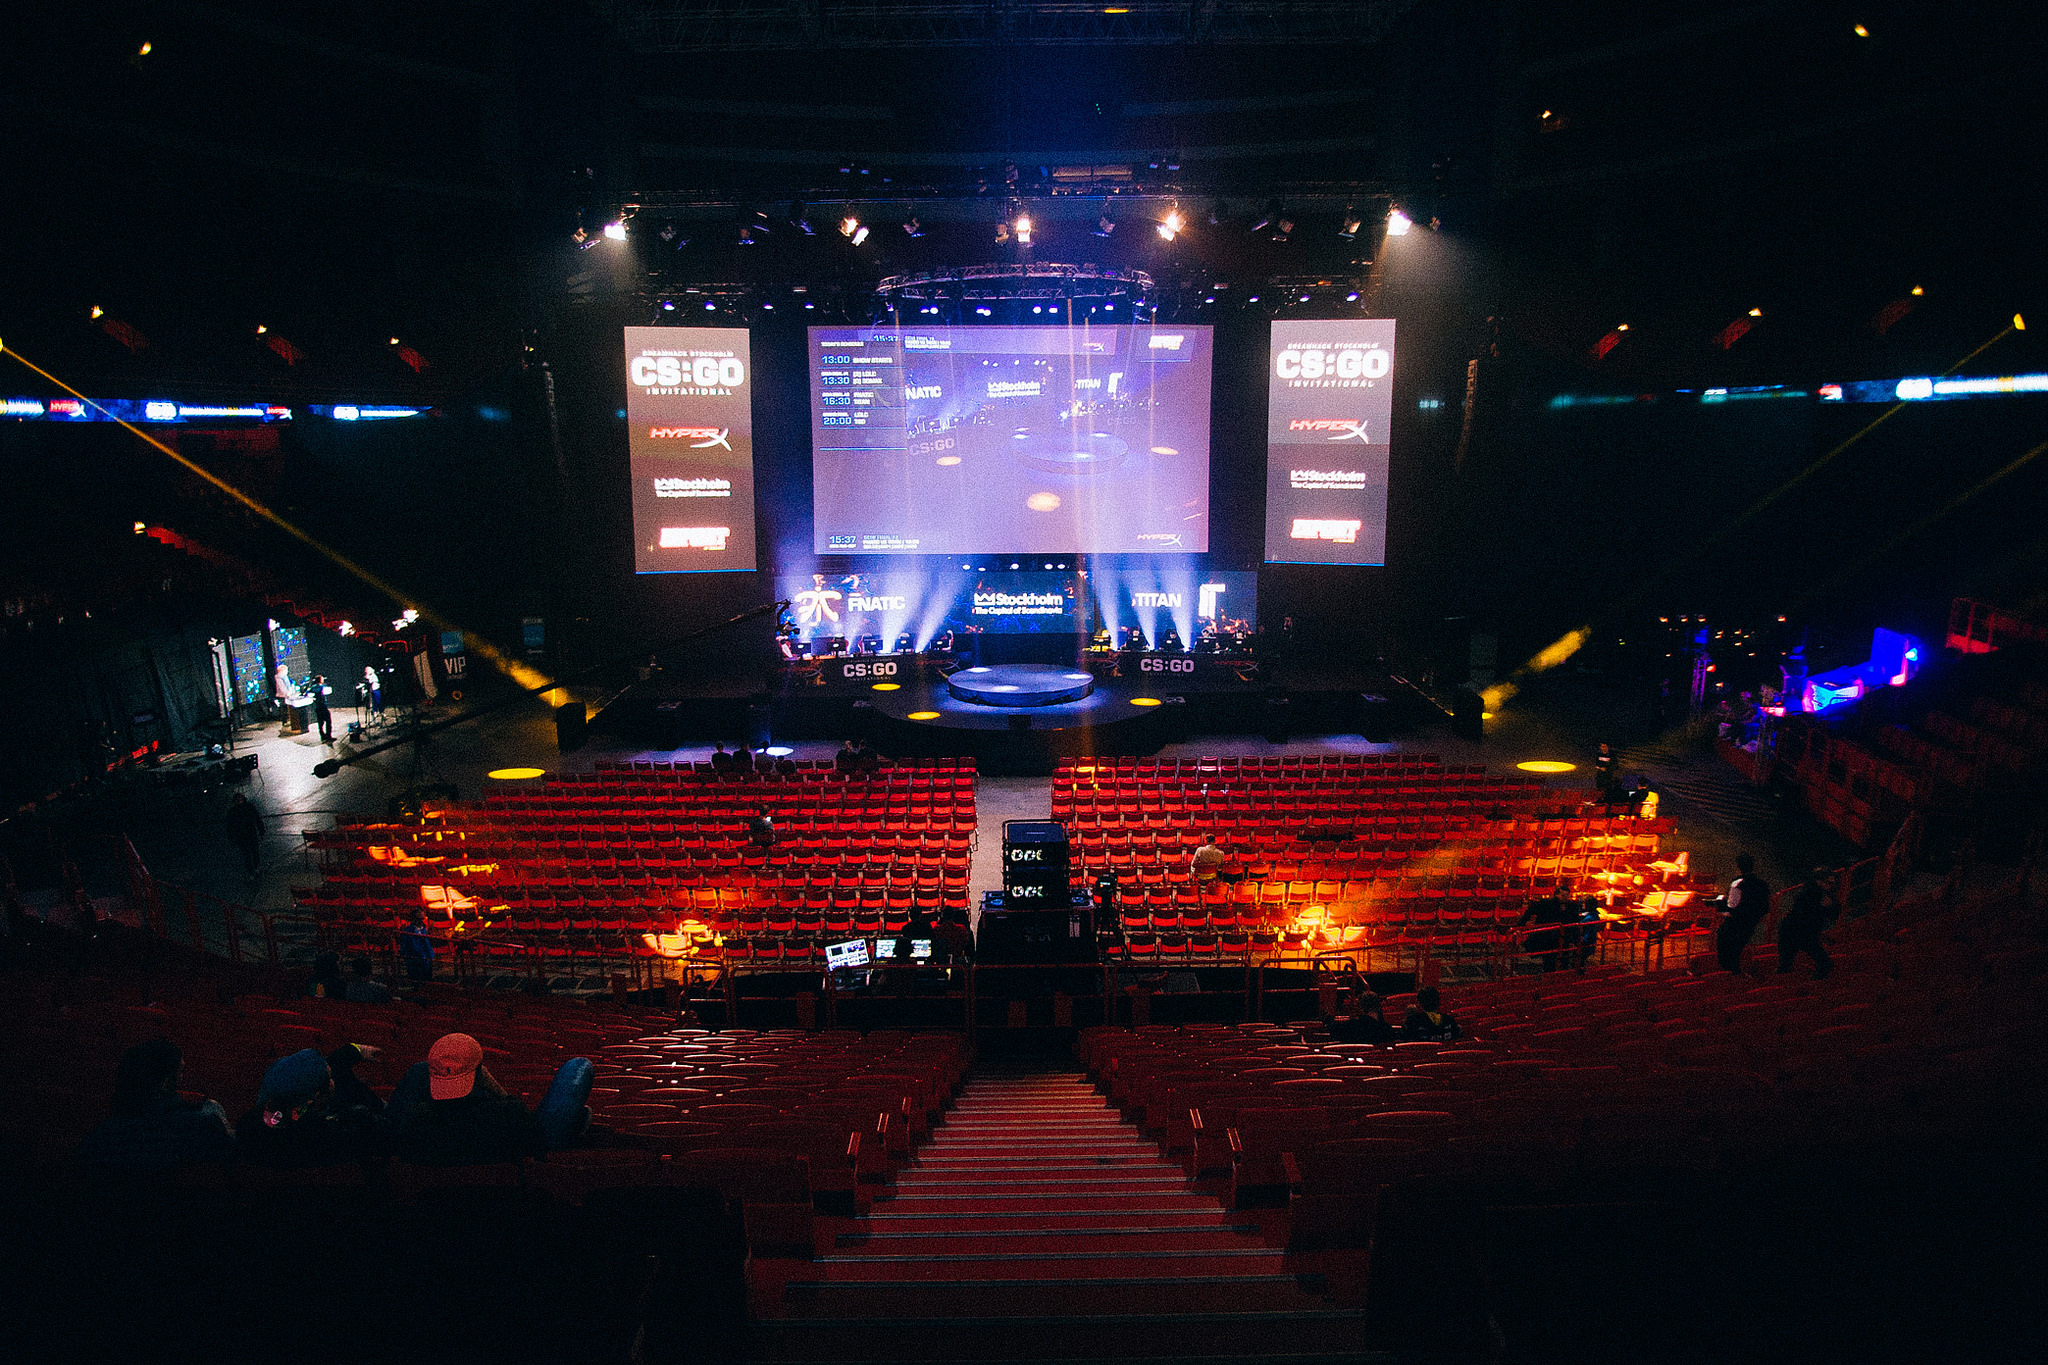 CEO of giant eSports festival fired following power struggle with board